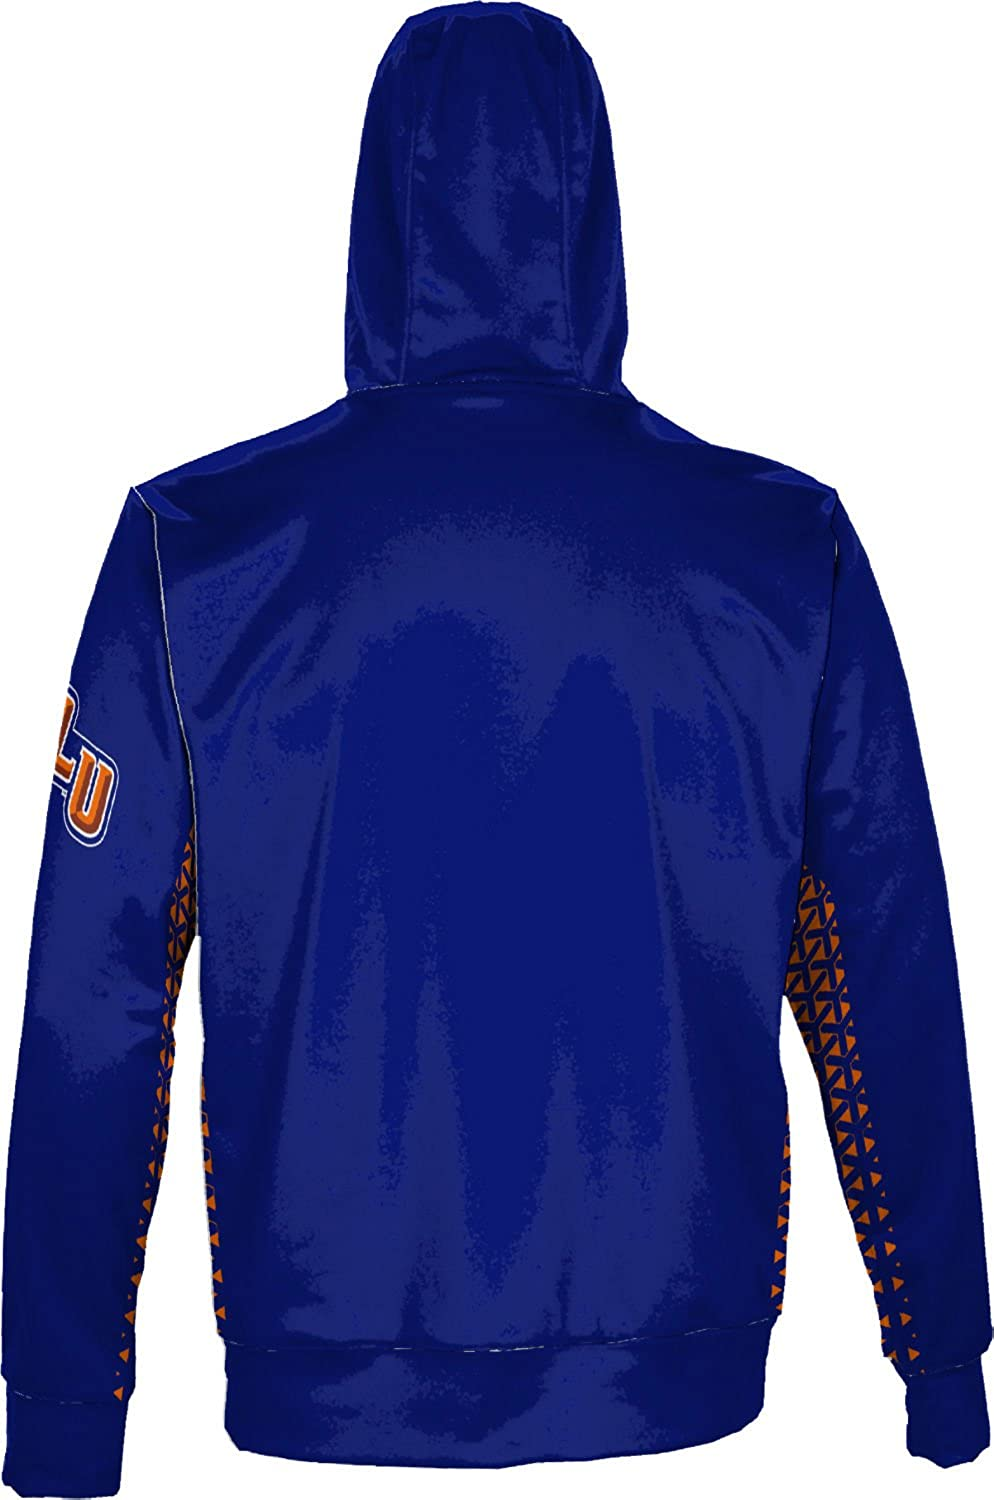 Geo Mens Pullover Hoodie PA Lincoln University School Spirit Sweatshirt